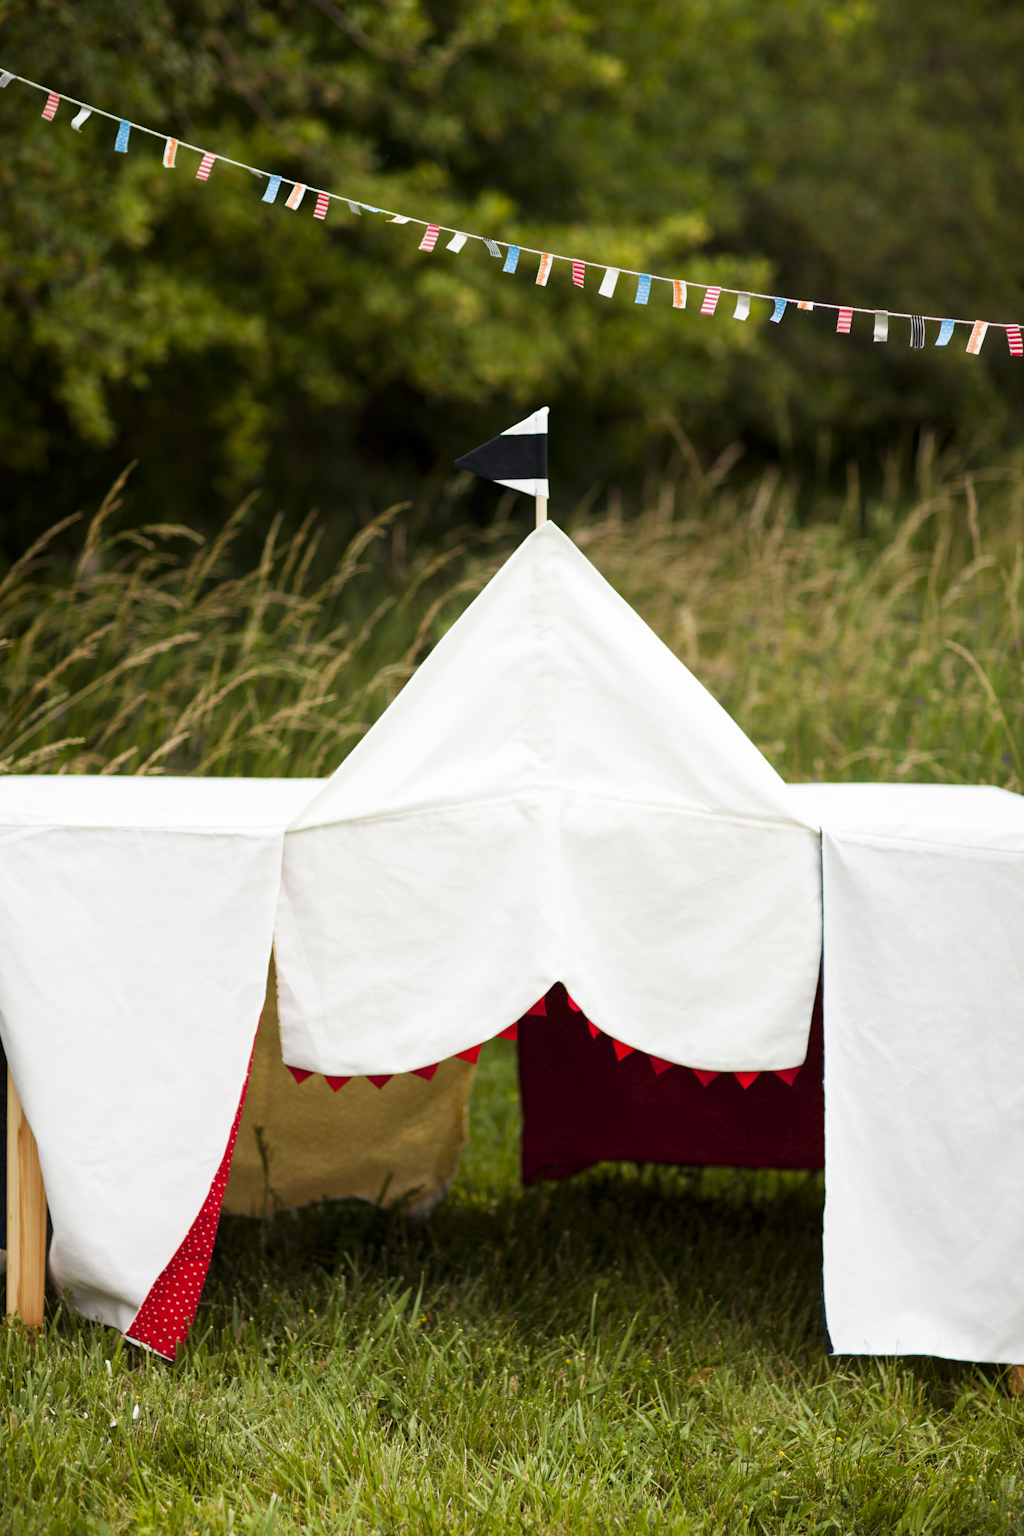 2013-07-10 Playful Table Tent 10